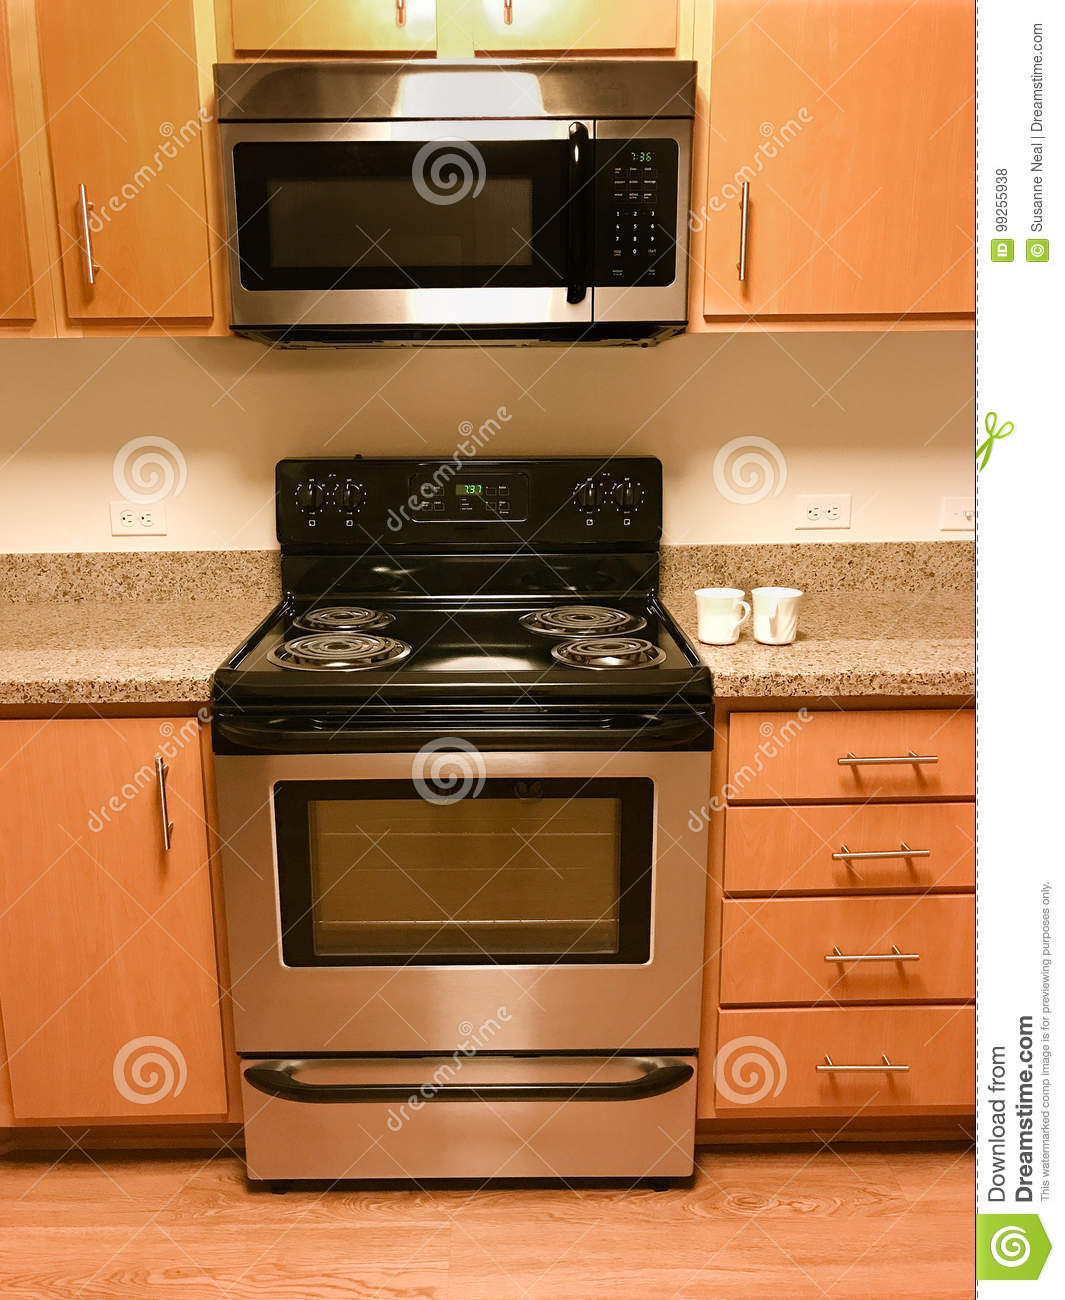 Range, Stove, And Microwave And Kitchen Cabinets Stock Photo ...